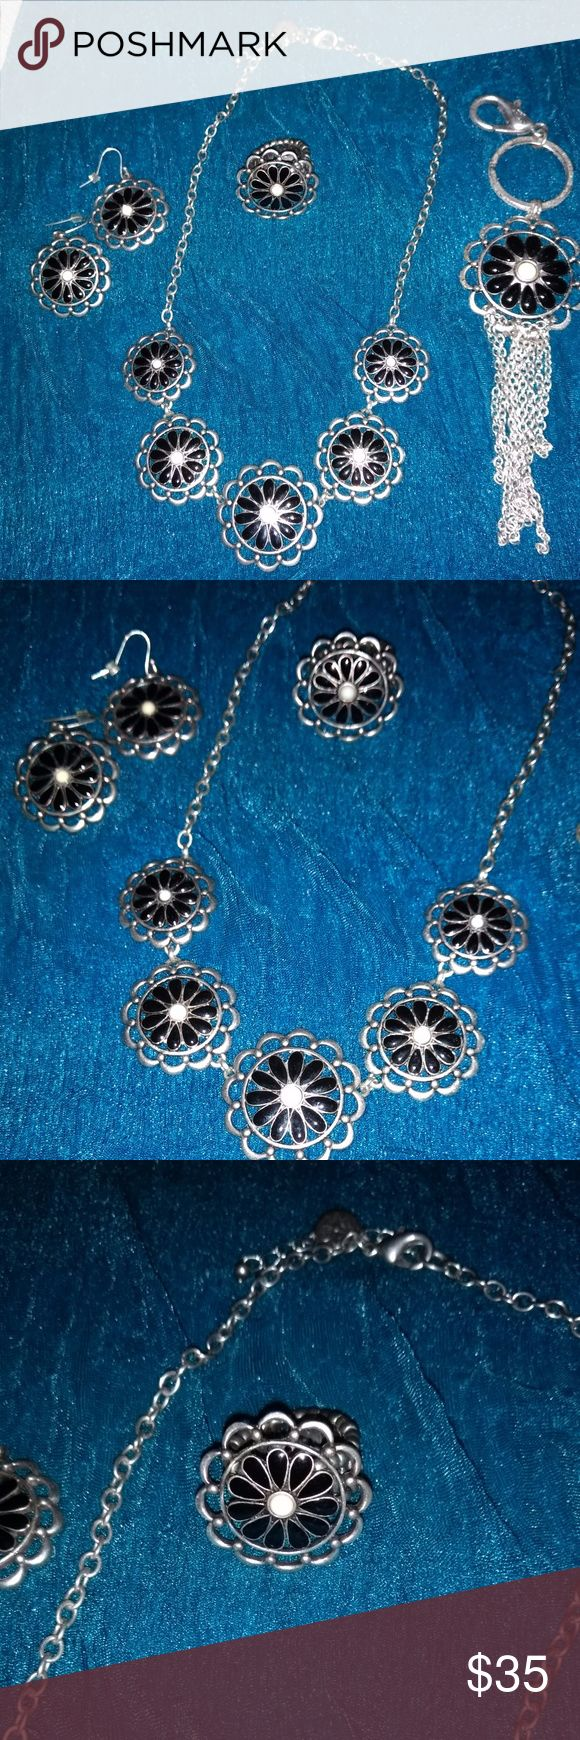 Grace Adele Set Beautiful Grace Adele set.  Necklace, Earrings, Ring and Key Fob.  Black daisy's in silver flower design.  The ring is stretchy so should fit most comfortably.  Worn only a few times. Grace Adele Jewelry Necklaces